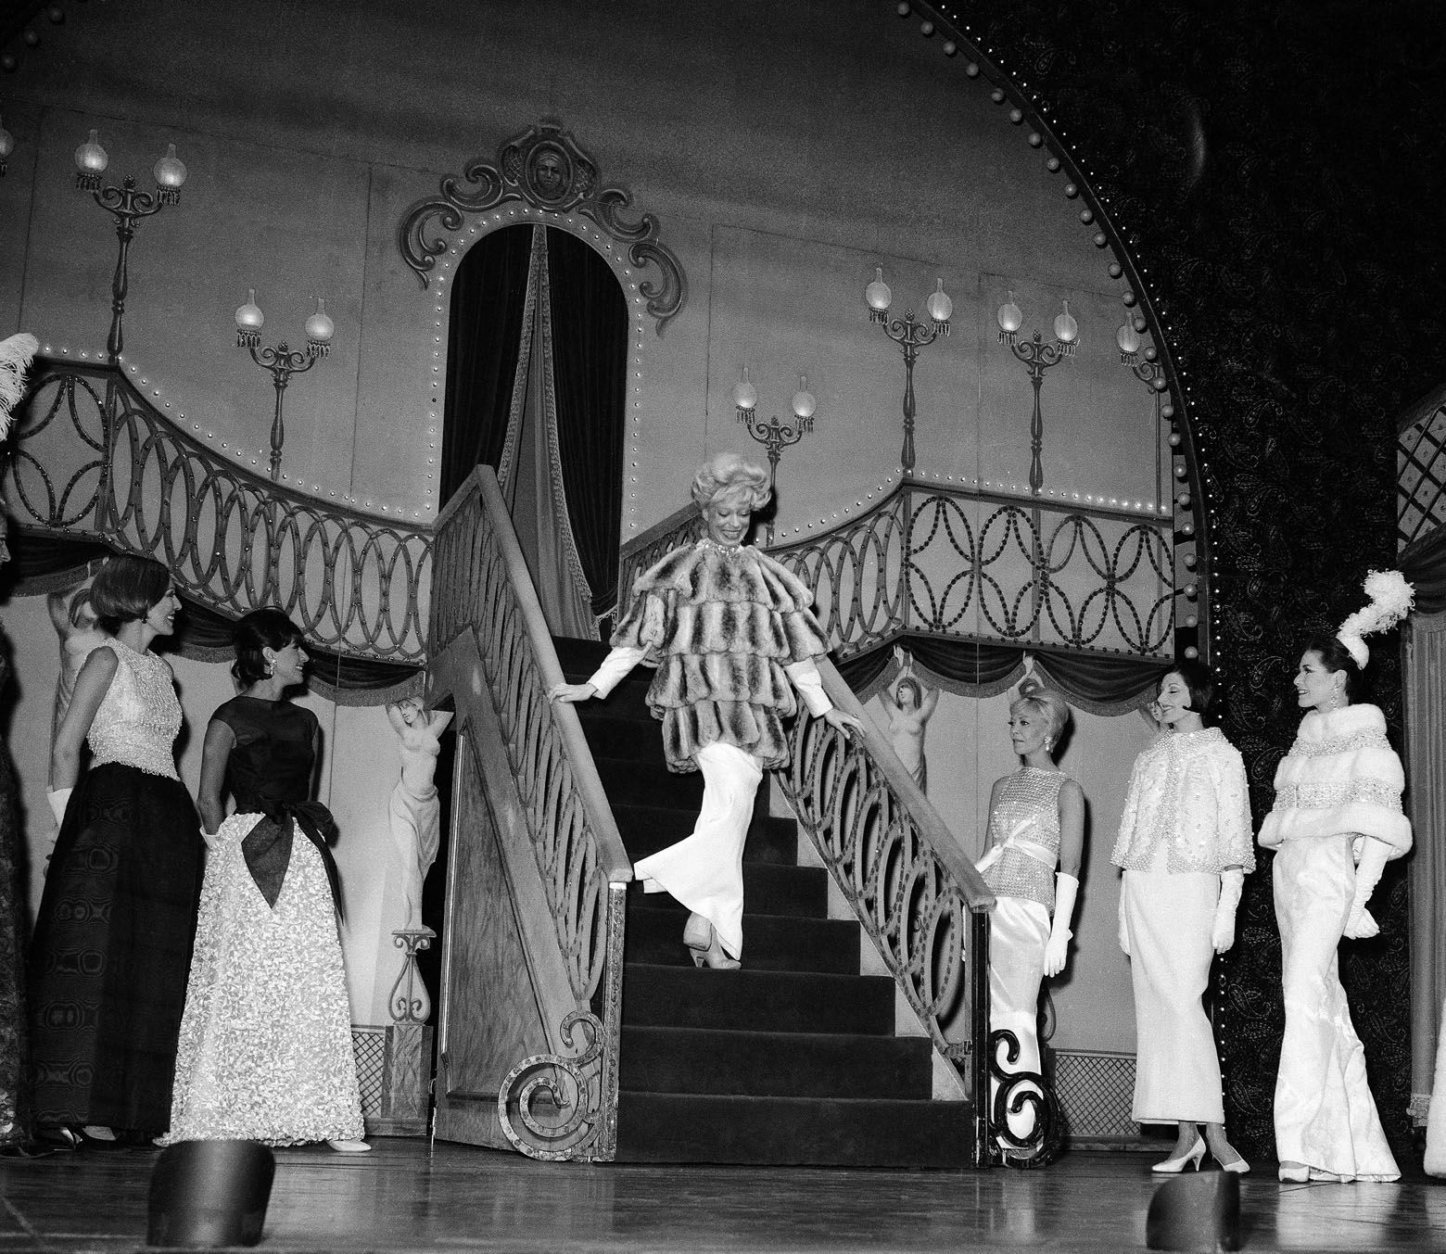 Carol Channing, star of the musical ?Hello, Dolly!? wears a Luis Estevez fur as she descends a stairway during a scene from the show staged as part of a fashion presentation at the St. James Theater in New York, Wednesday, June 3, 1964. (AP Photo)